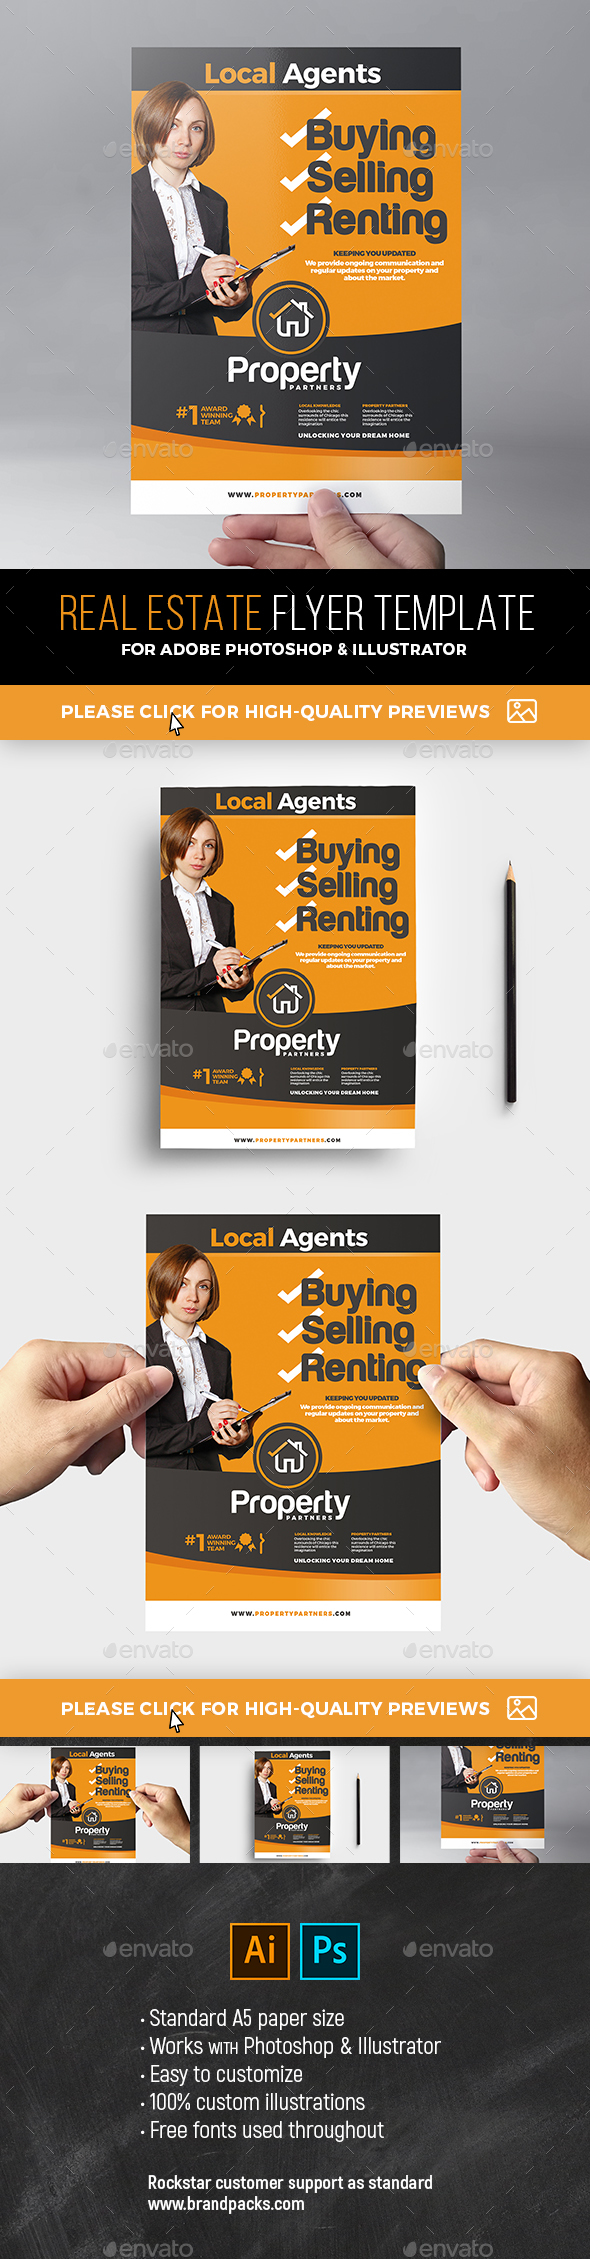 Realtor Flyer Template - Commerce Flyers